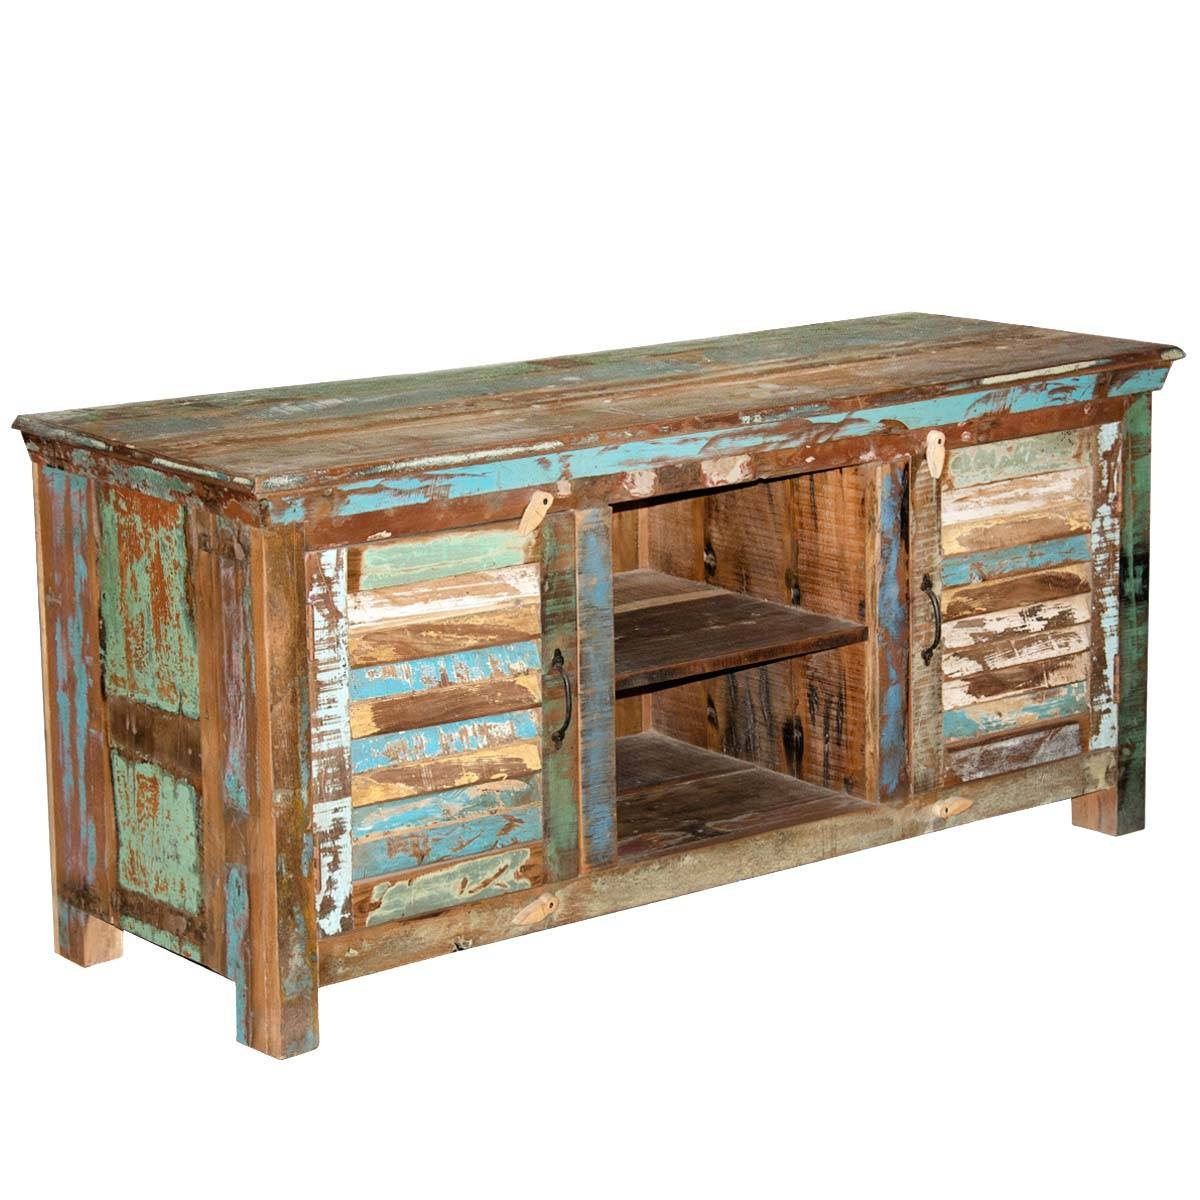 Rustic Shutter Doors Reclaimed Wood Tv Stand Media Console within Cheap Wood Tv Stands (Image 8 of 15)